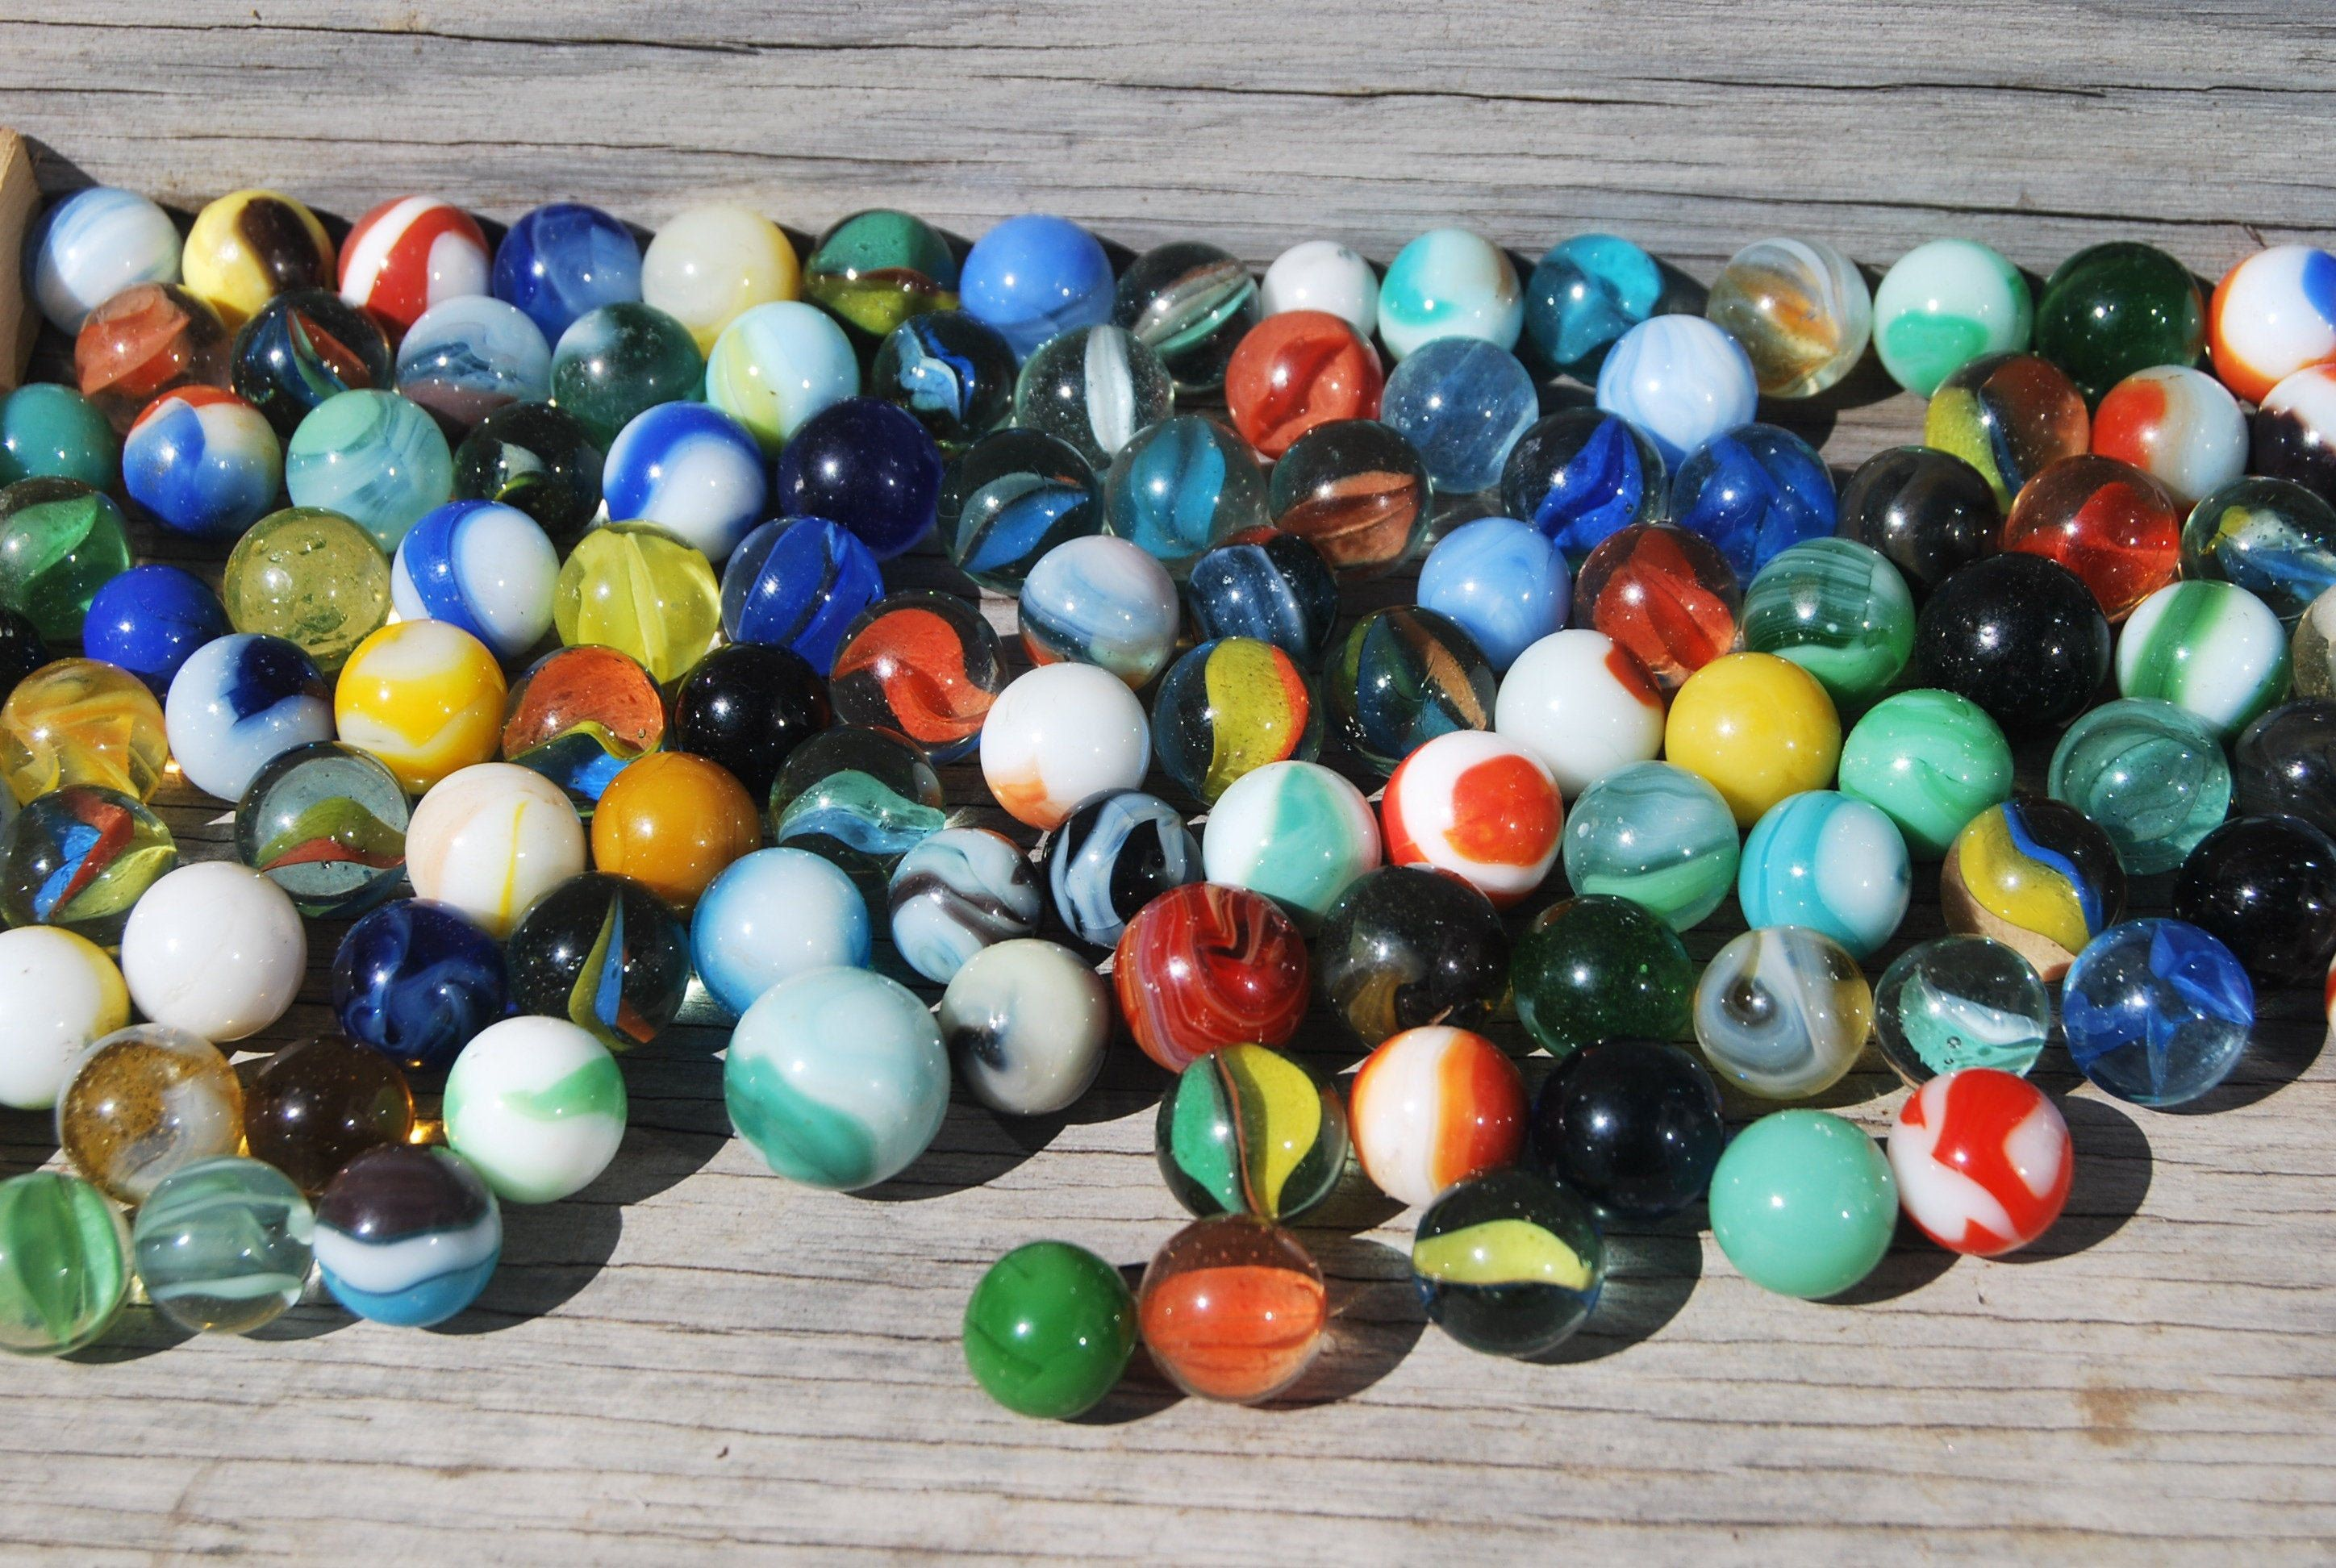 120 Antique Marbles In A Ball Perfect Mason Jar Old Glass Toy Marbles Vintage Jars Vintage Jars Glass Toys Mason Jars